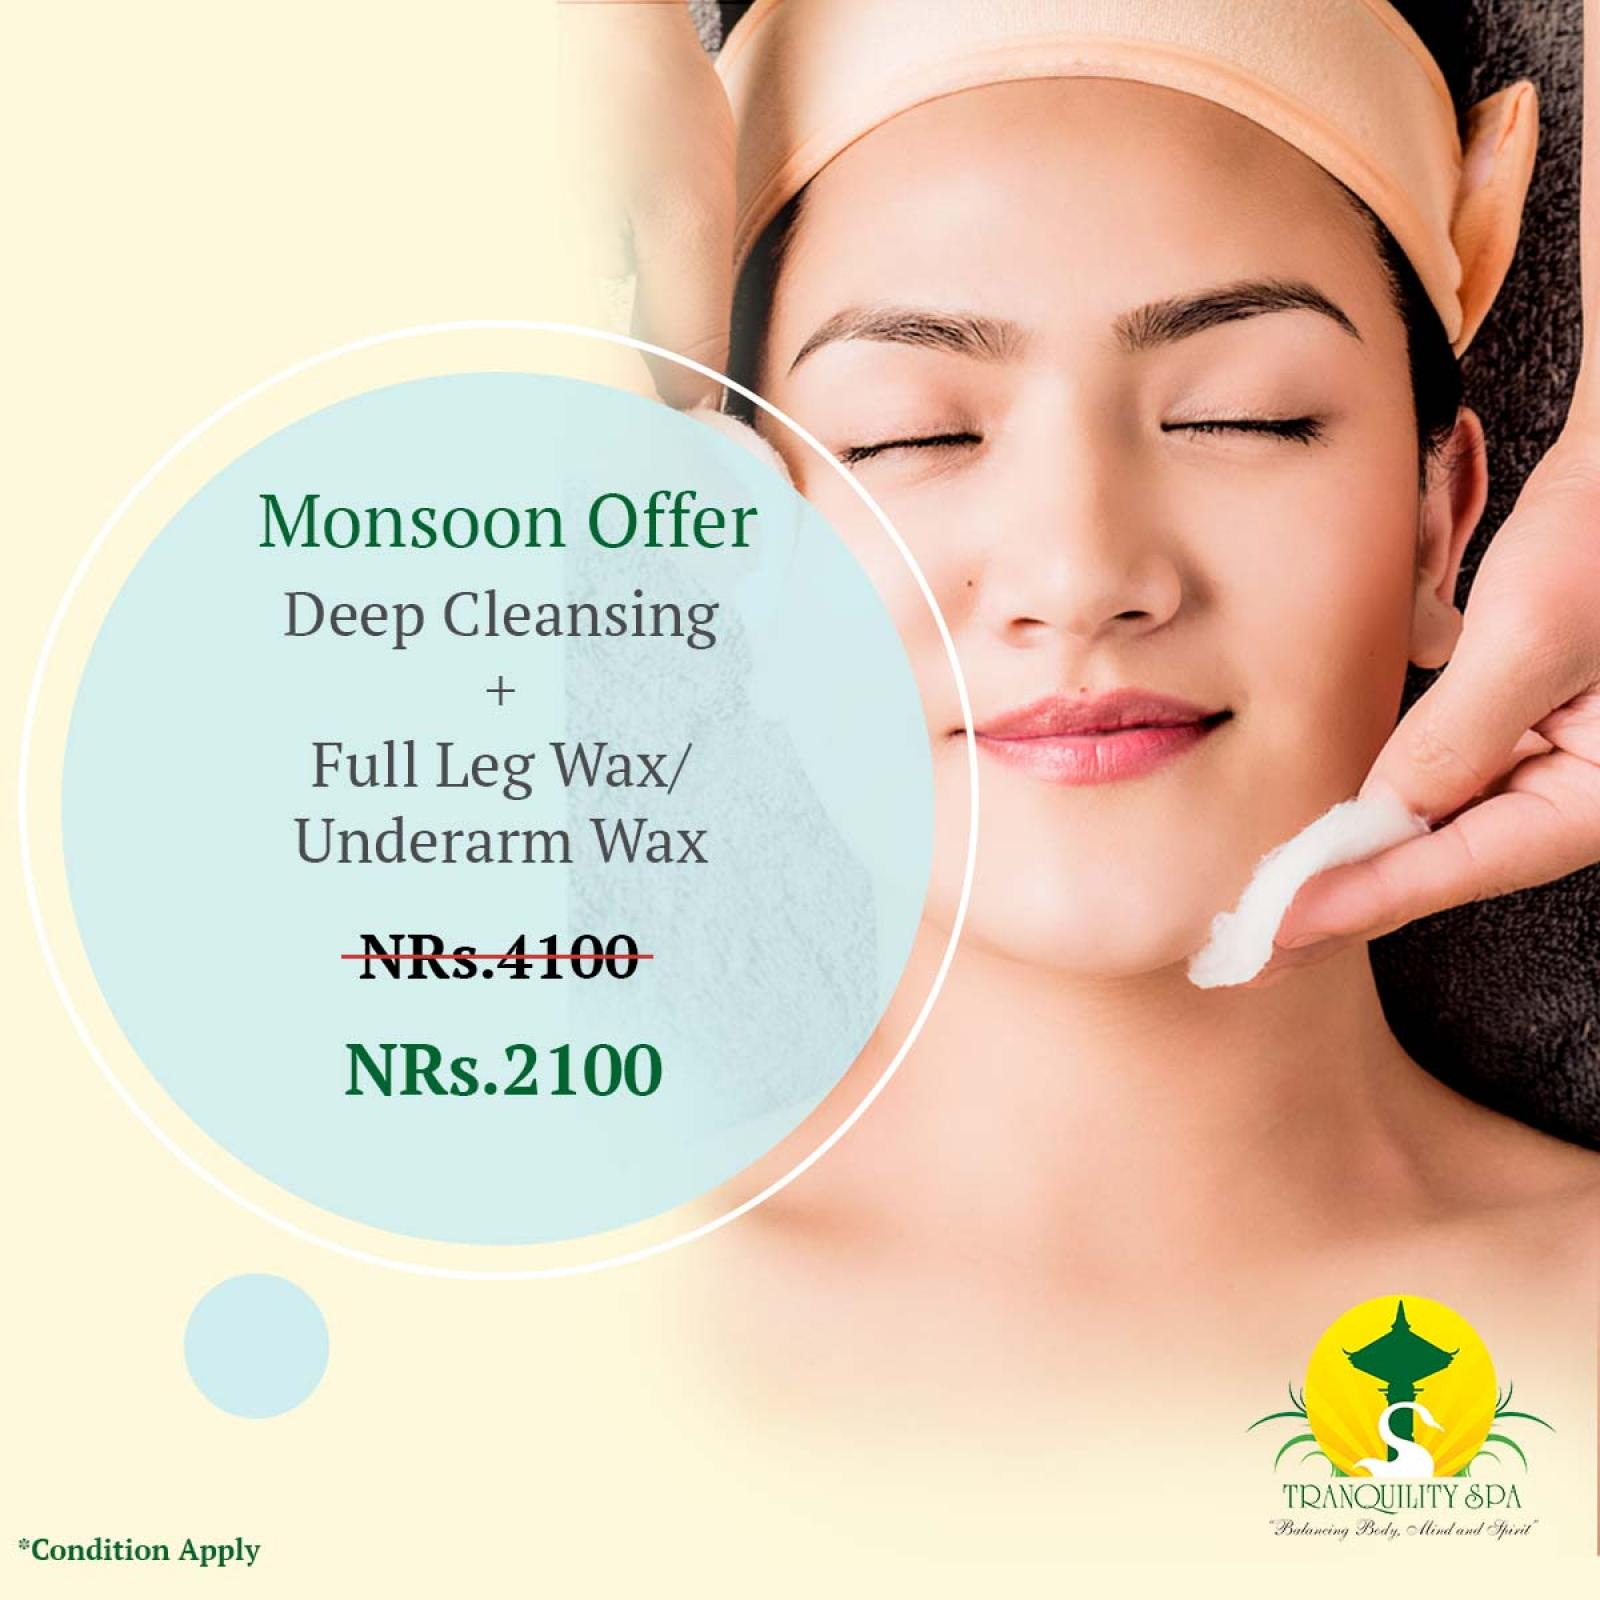 (Deep Cleansing + Full Leg Wax + Underarm Wax) only @Rs 2100 till 17th of September